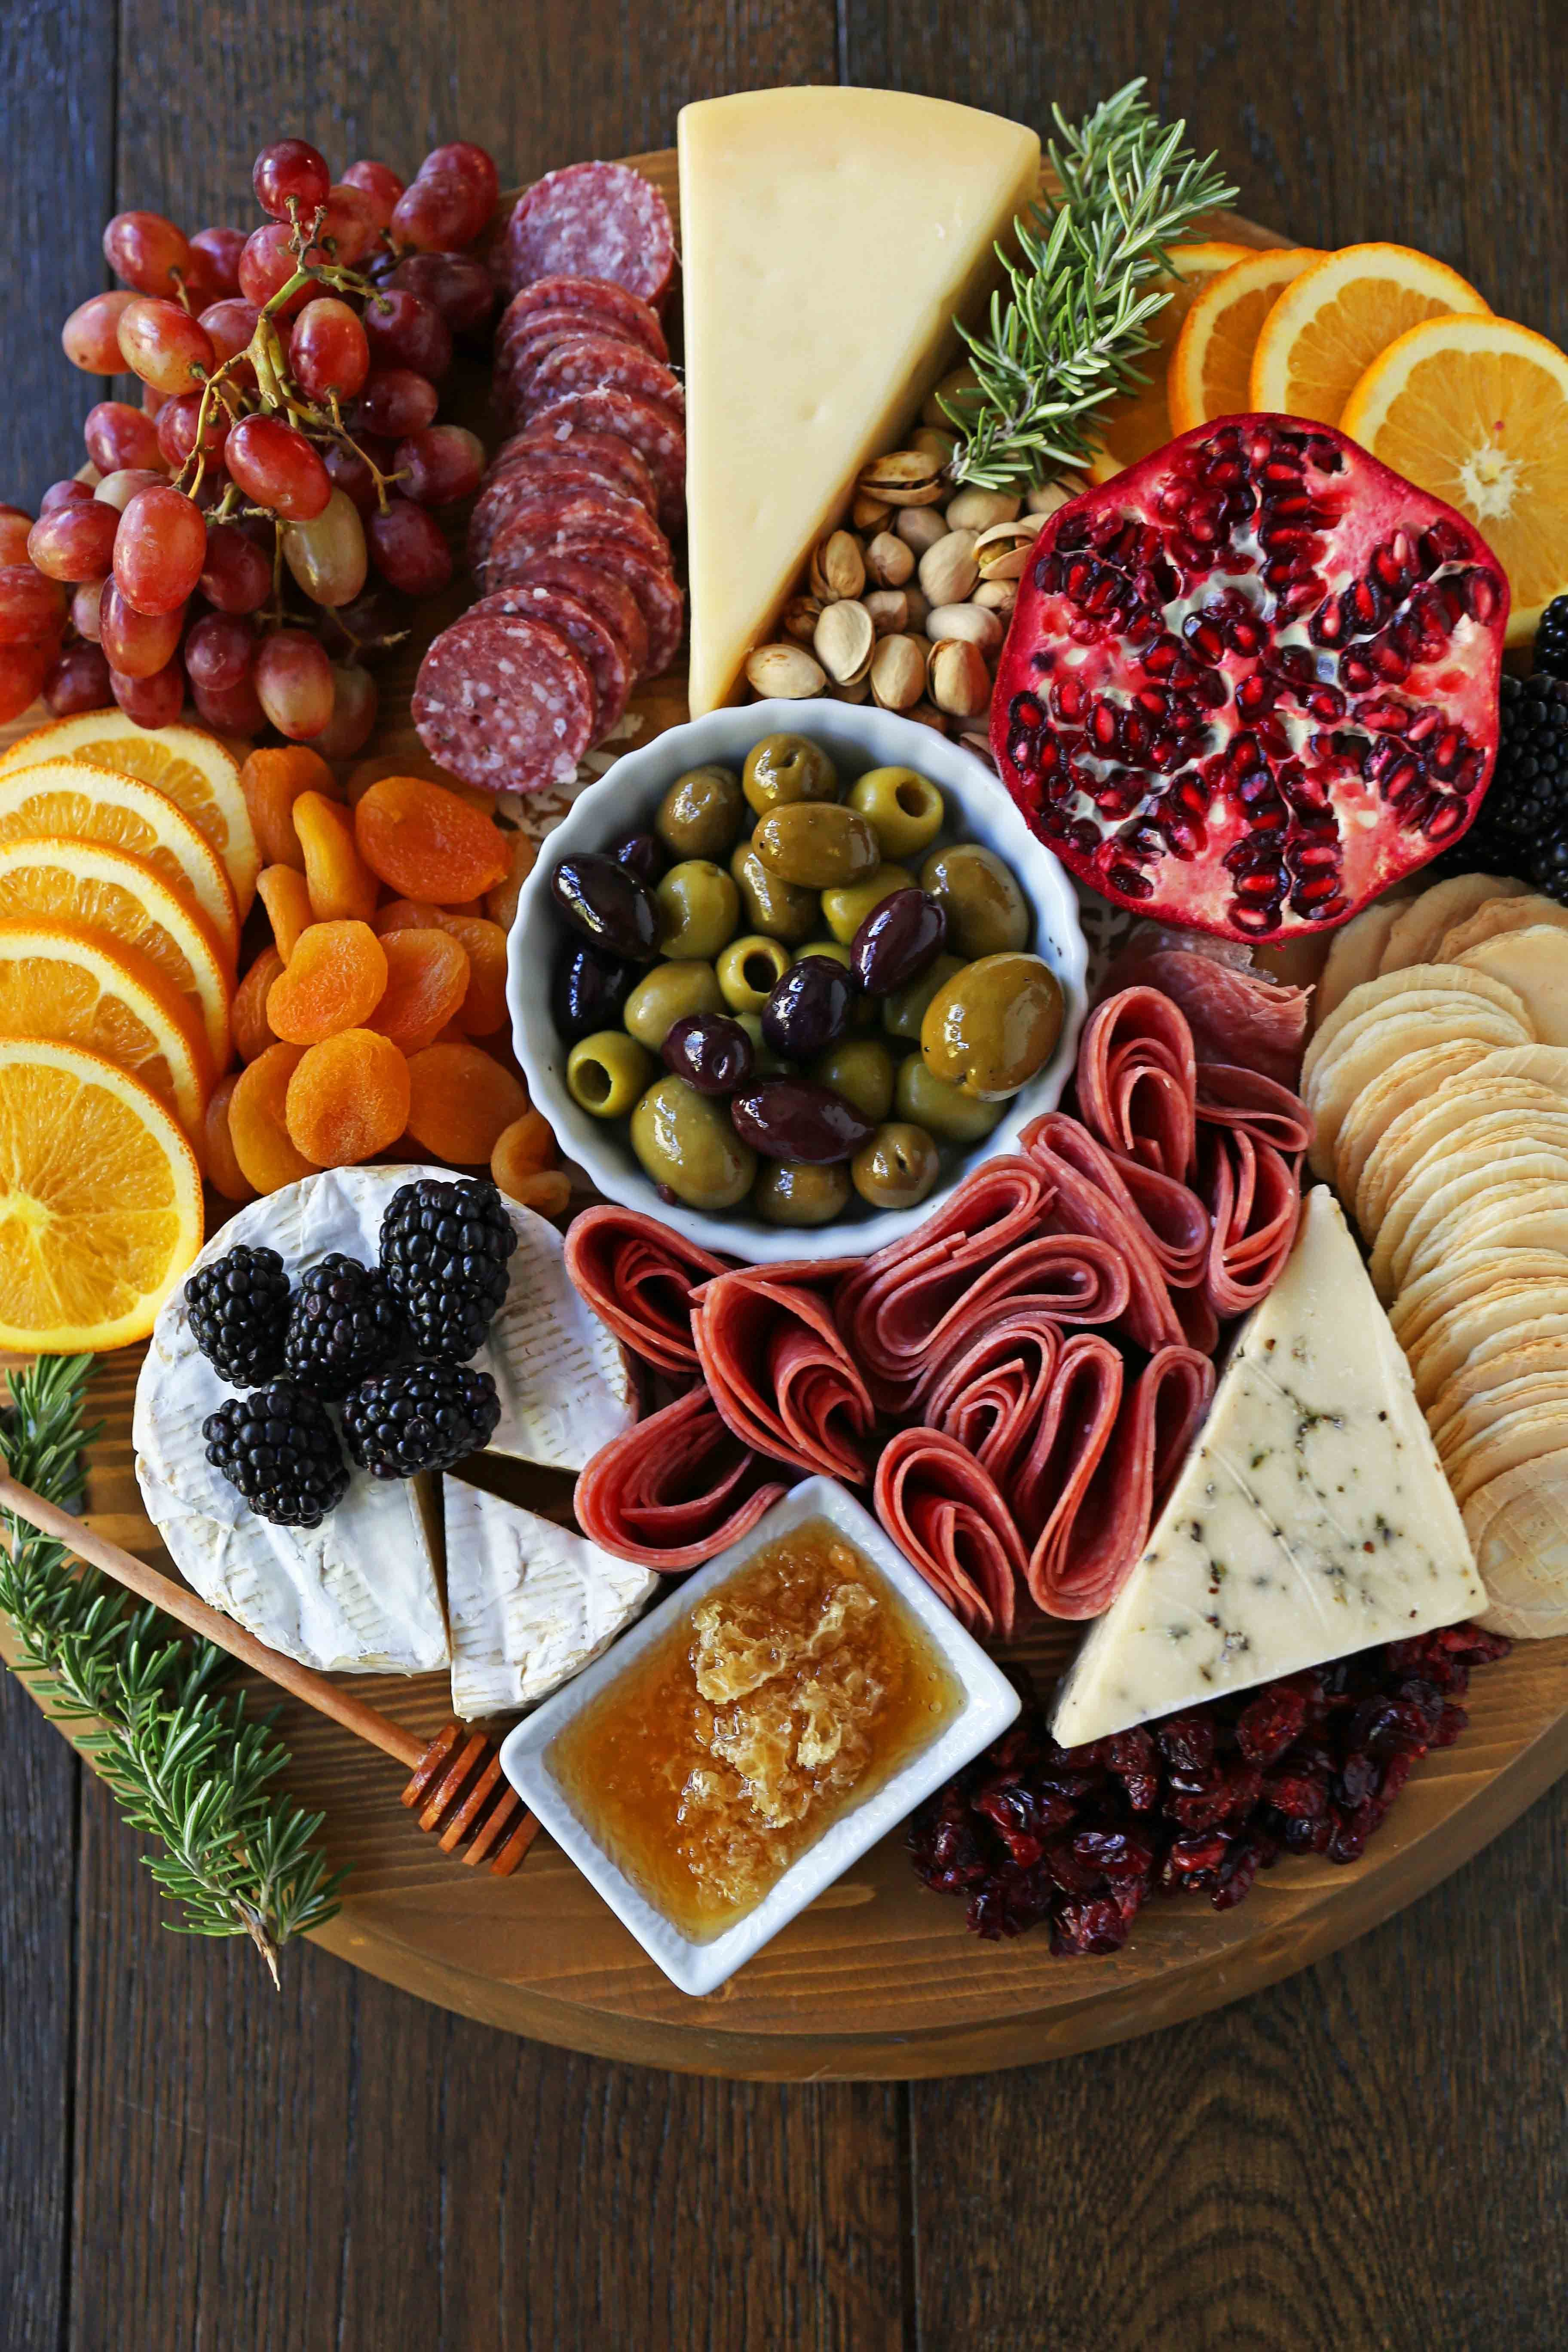 Charcuterie Board (Meat and Cheese Platter) #meatfood